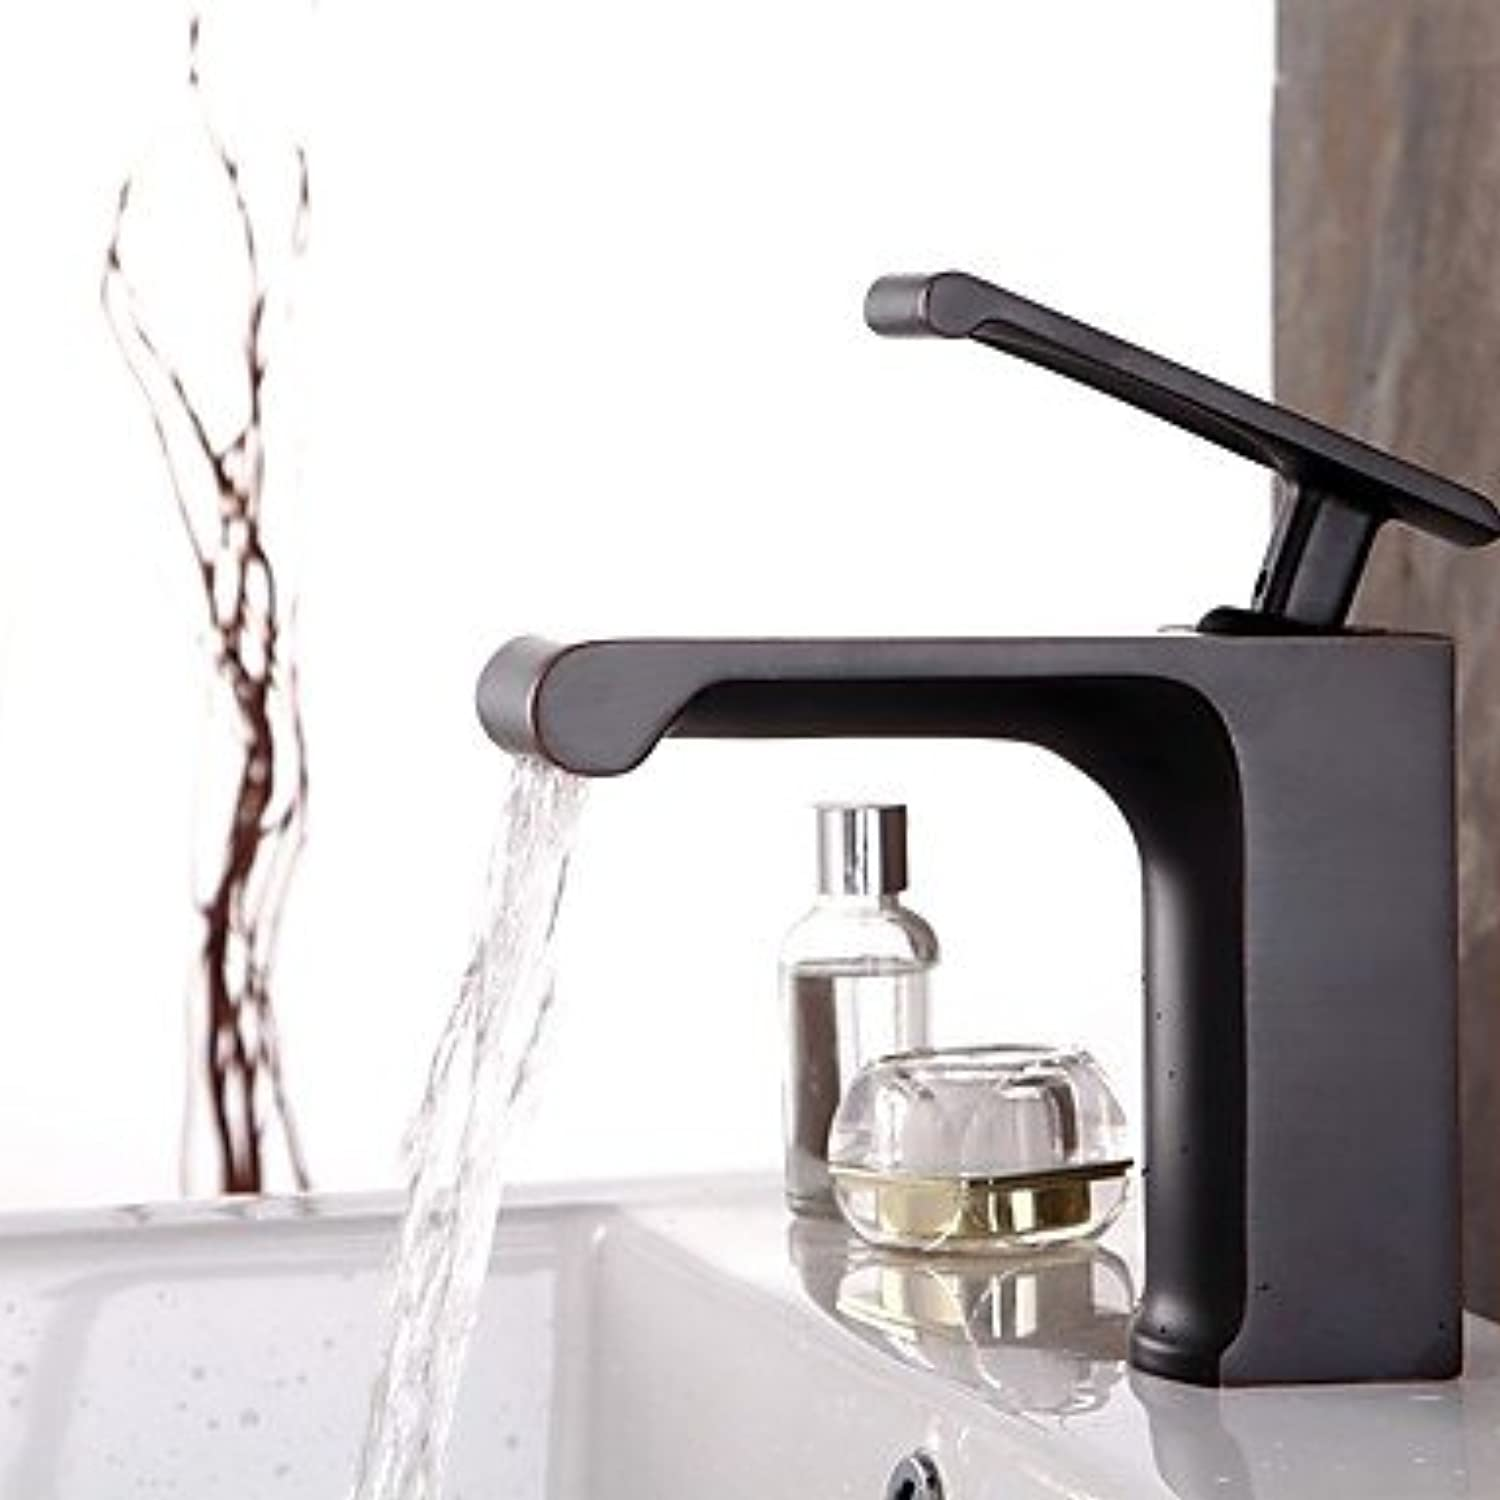 Contemporary Waterfall Single Handle Oil-rubbed Bronze Finish Bathroom Sink Faucet - Black